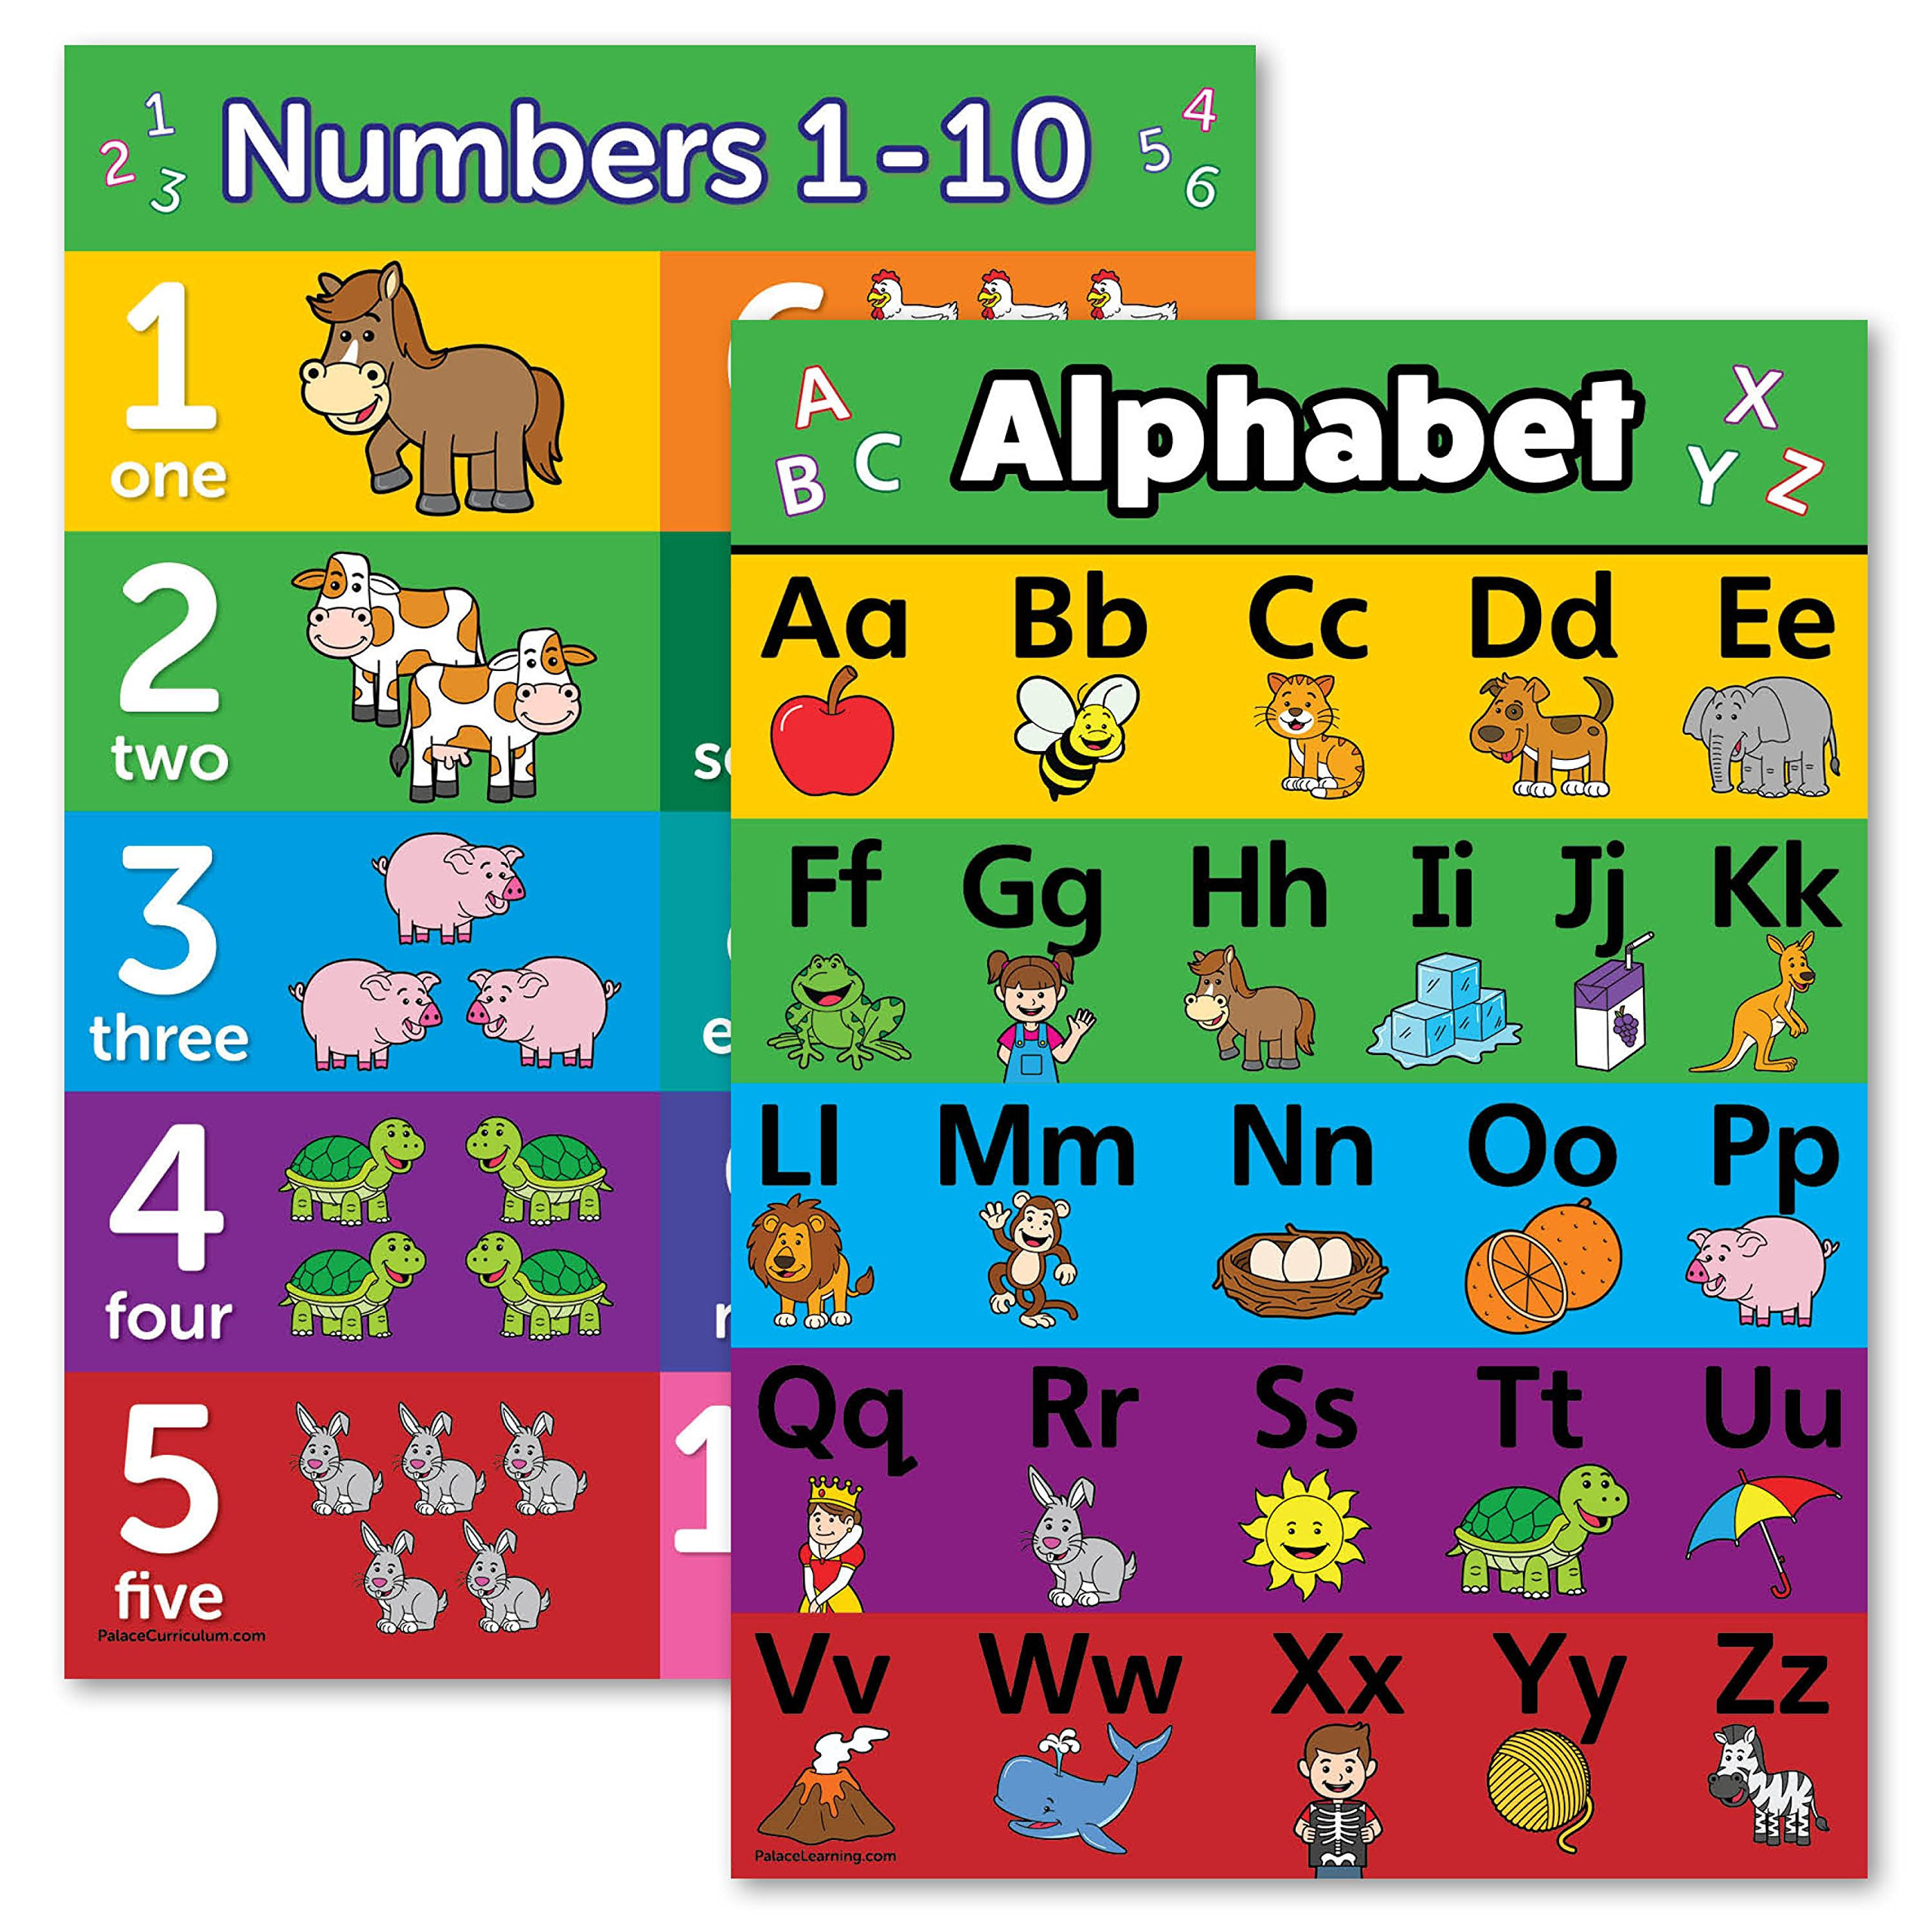 Preschool Palace Curriculum Abc Alphabet & Numbers 1 10 Poster Chart Set Laminated Double Sided 18x24